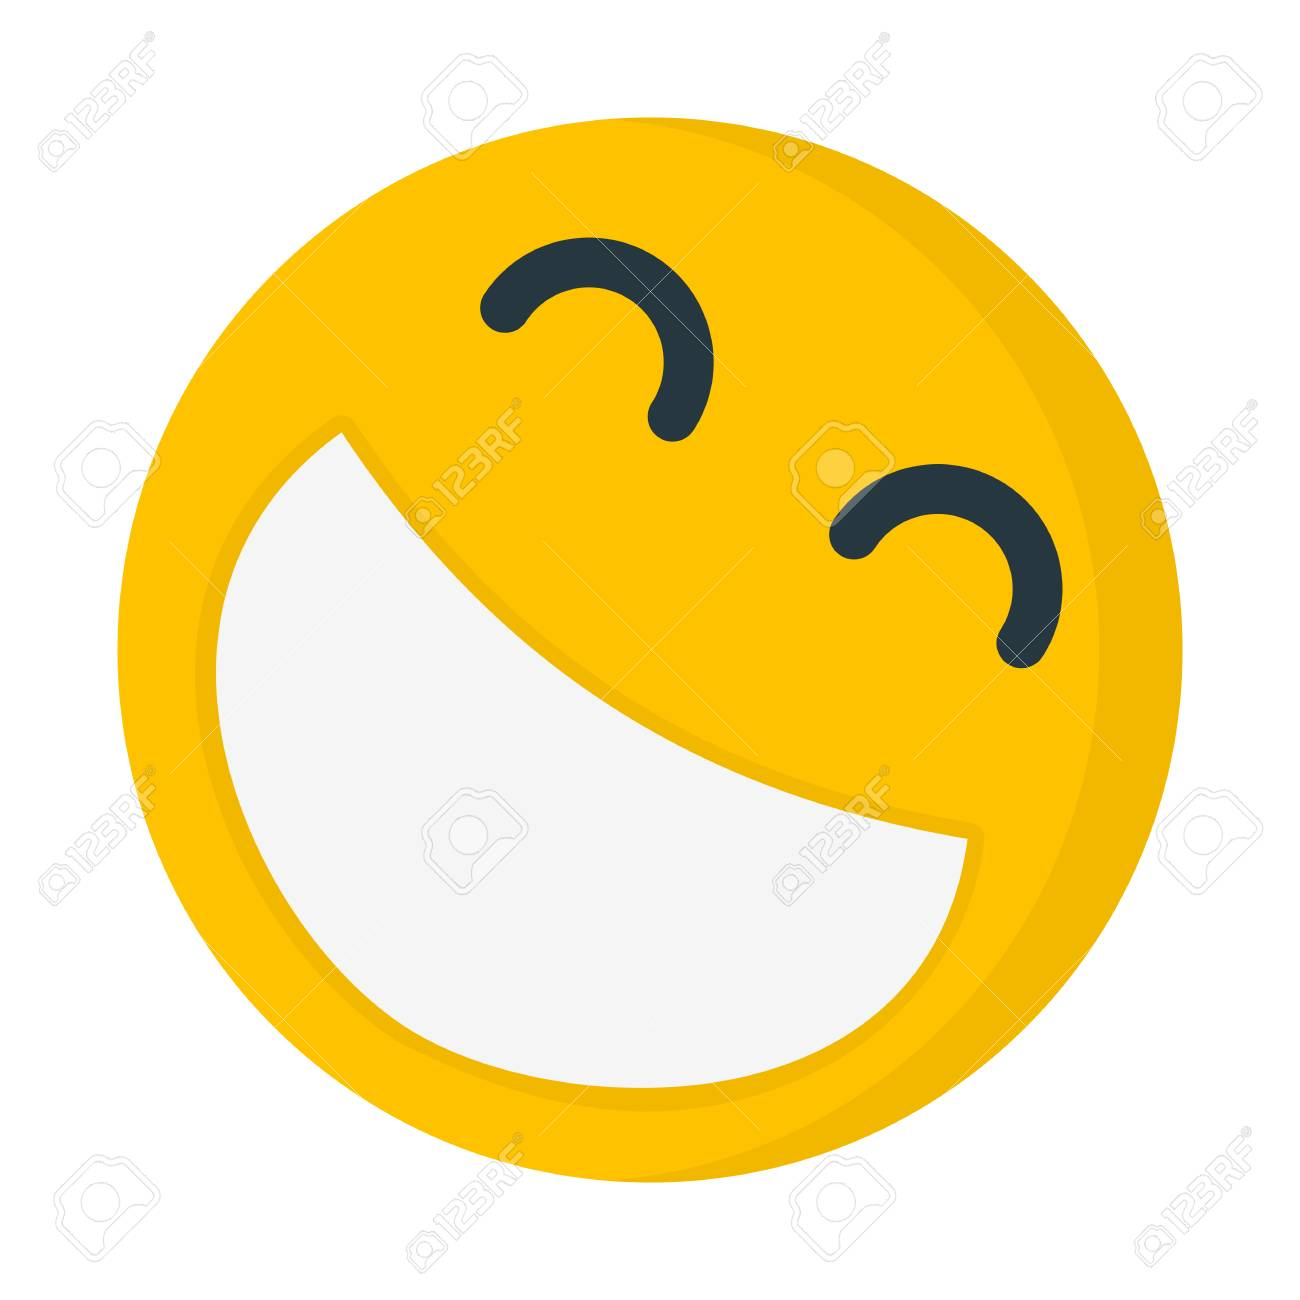 laughing emoji illustration stock vector 94675966